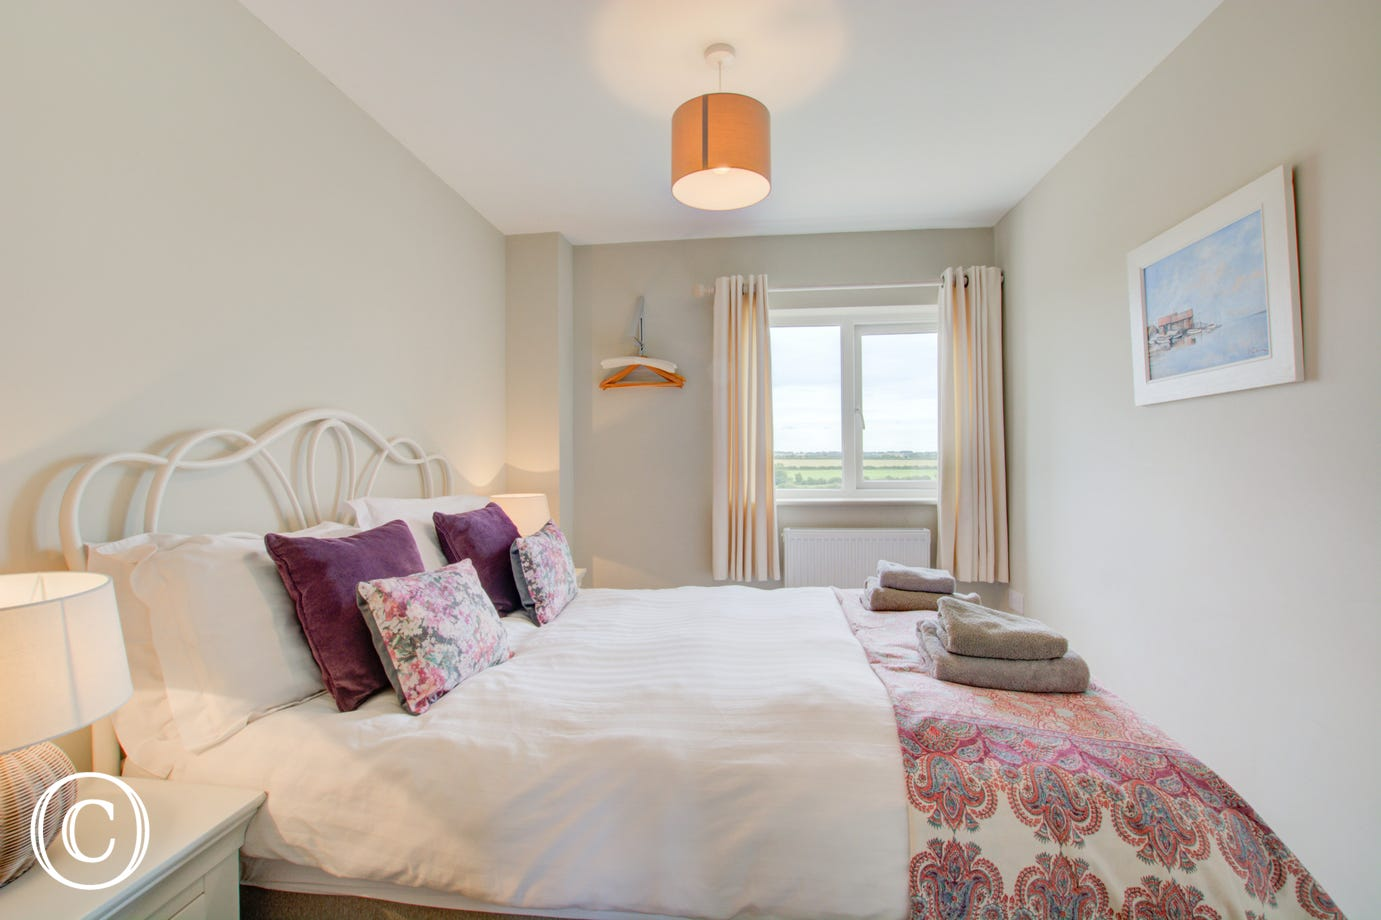 Bedroom four is a light and airy room with double bed